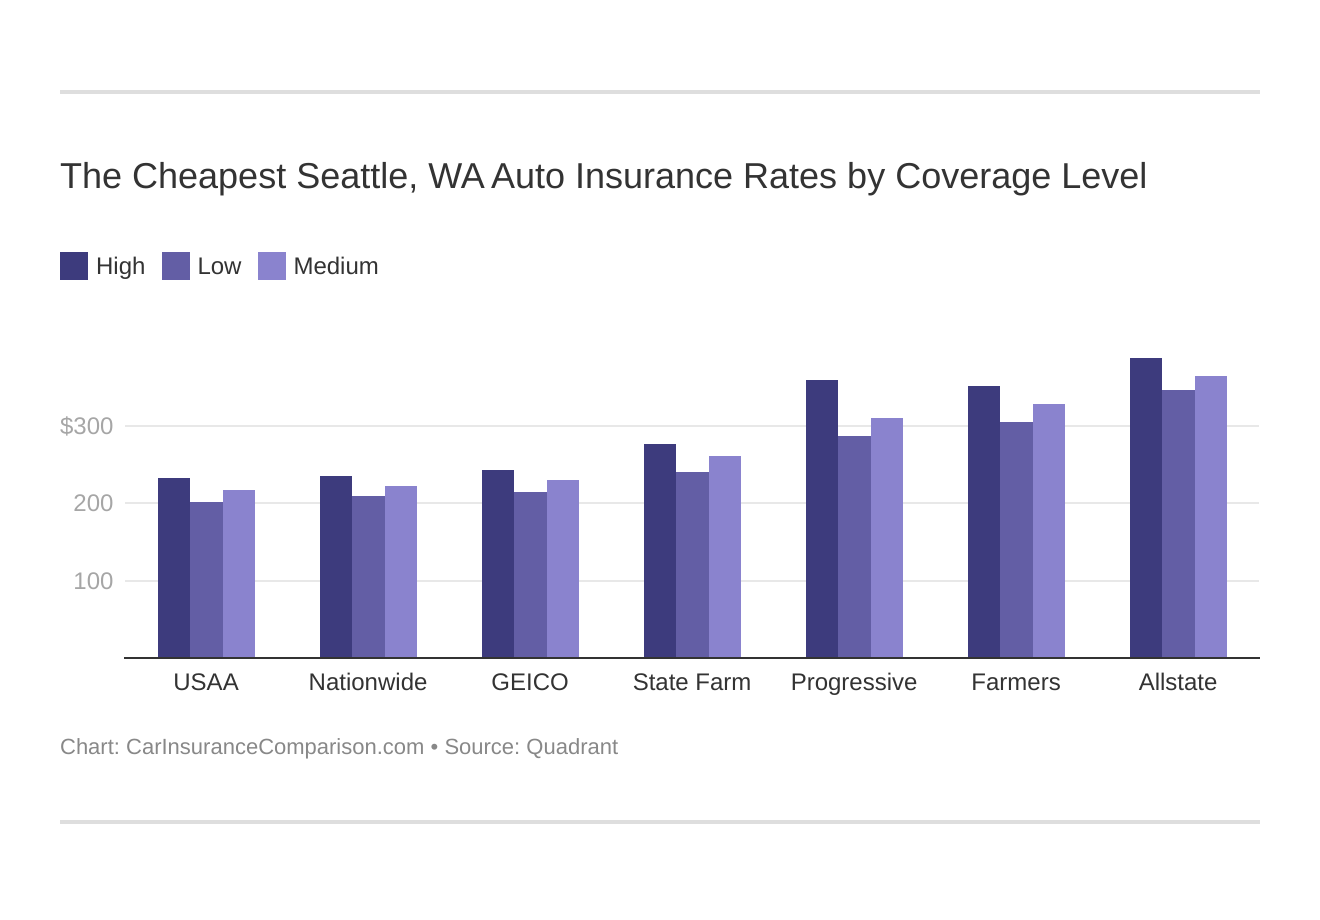 The Cheapest Seattle, WA Auto Insurance Rates by Coverage Level